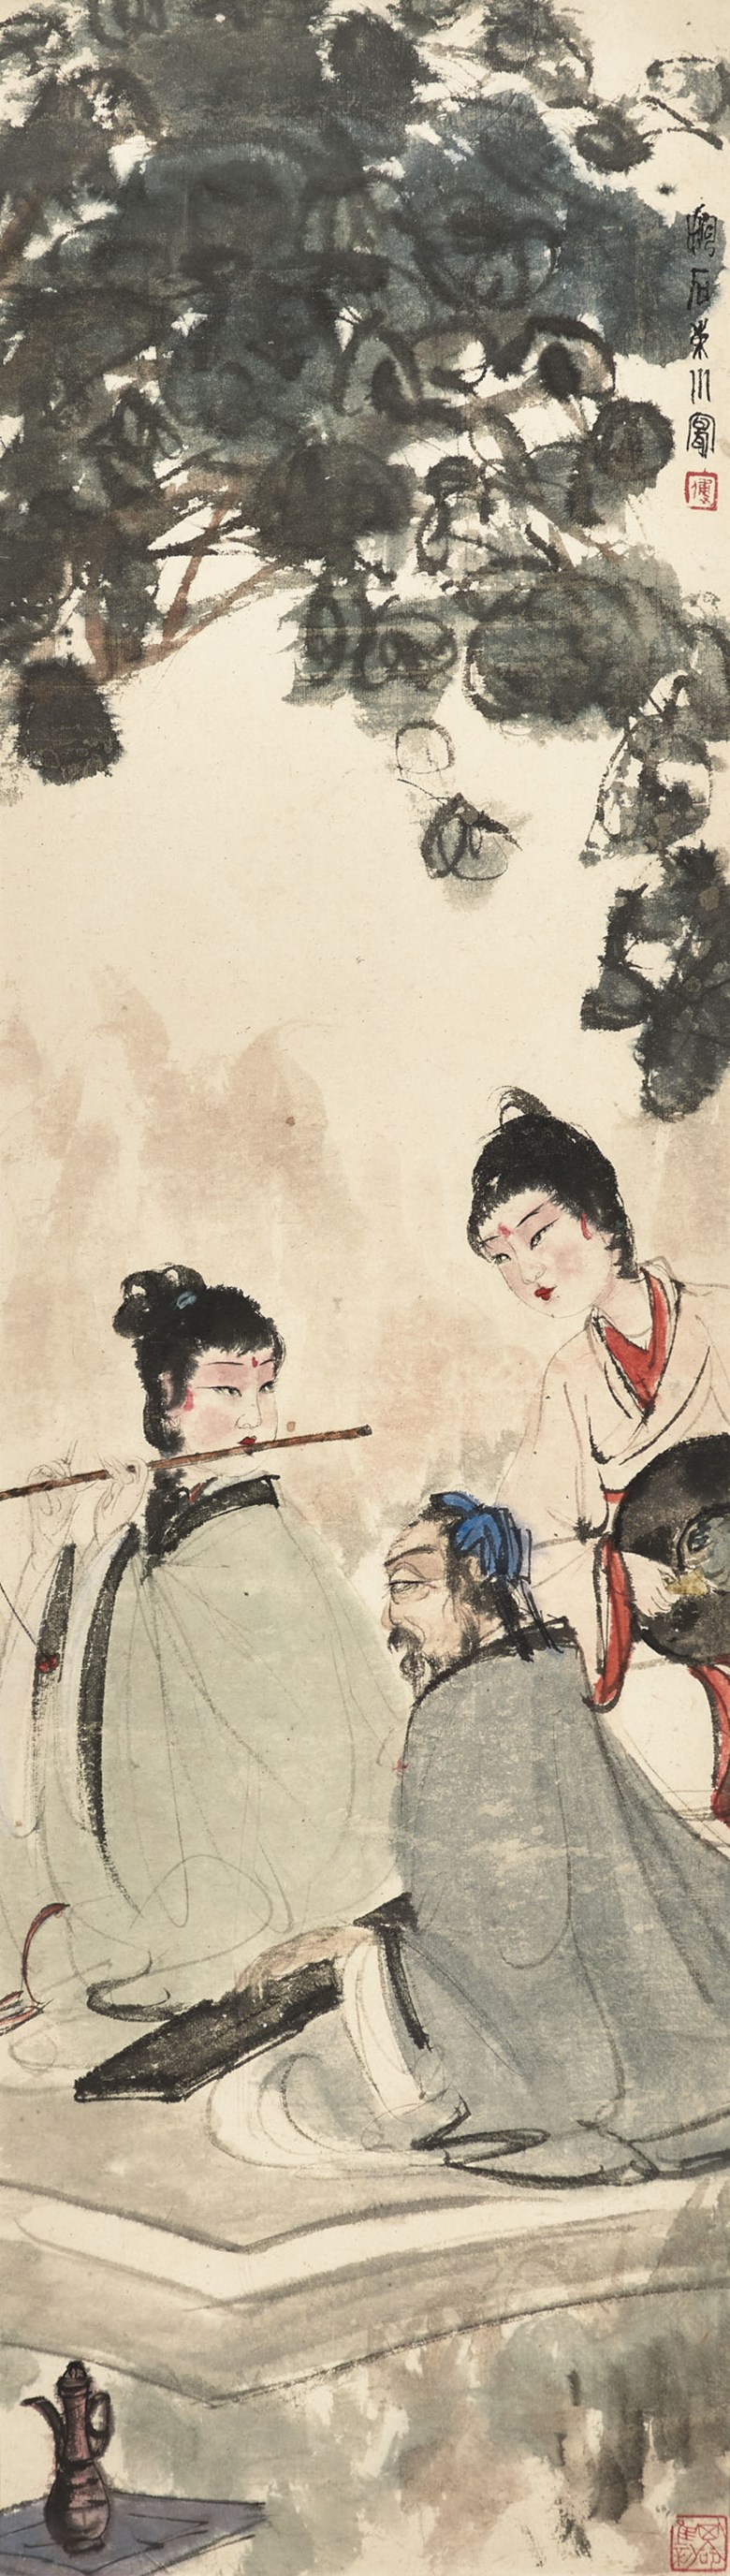 Fu Baoshi (1904-1965), Playing Flute in Dongshan. 103.3 x 29  cm (40⅝ x 11⅜  in). Estimate HK$26,000,000-35,000,000. Offered in Fine Chinese Modern Paintings on 29 May at Christie's in Hong Kong